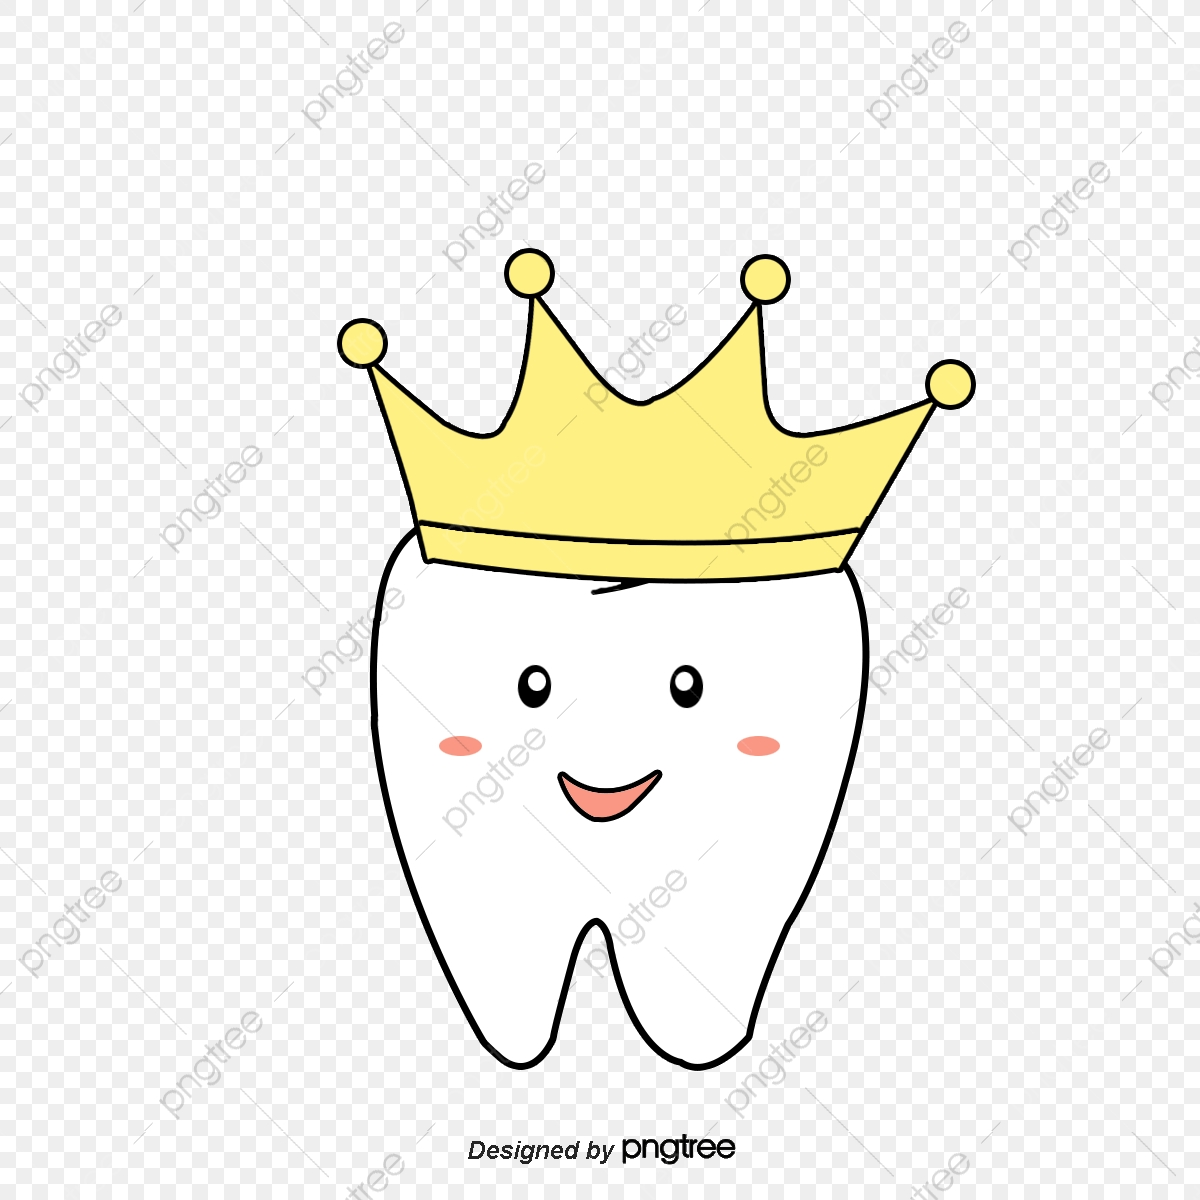 Tooth clipart file. Beautiful d villain crown